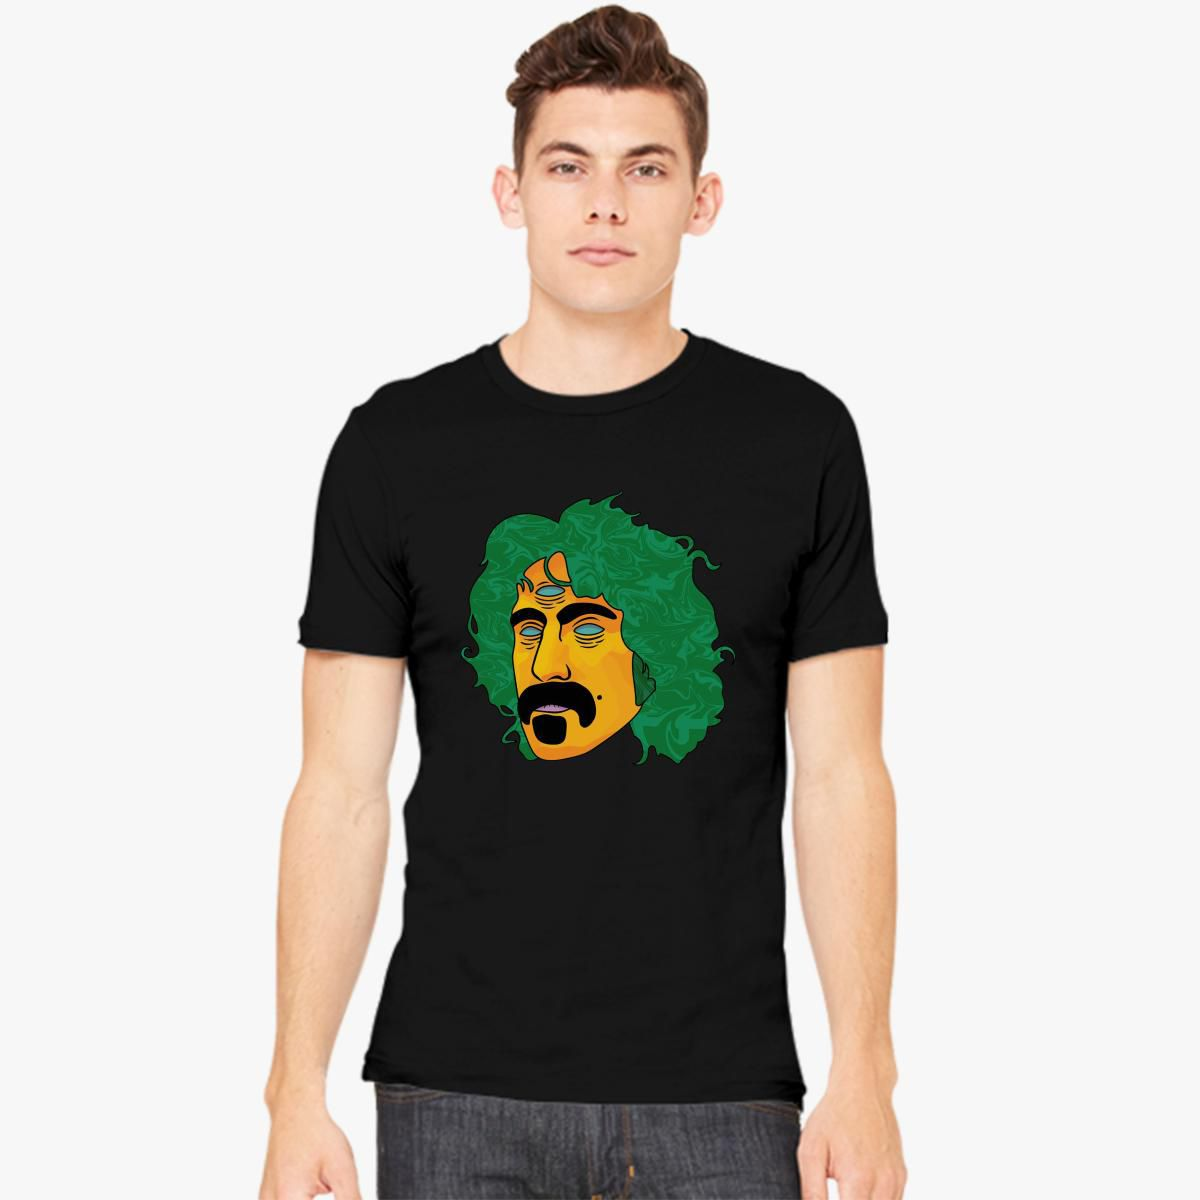 EVE JOHN Frank Zappa Picture Tee Printed Comfortable Black T Shirt for Women